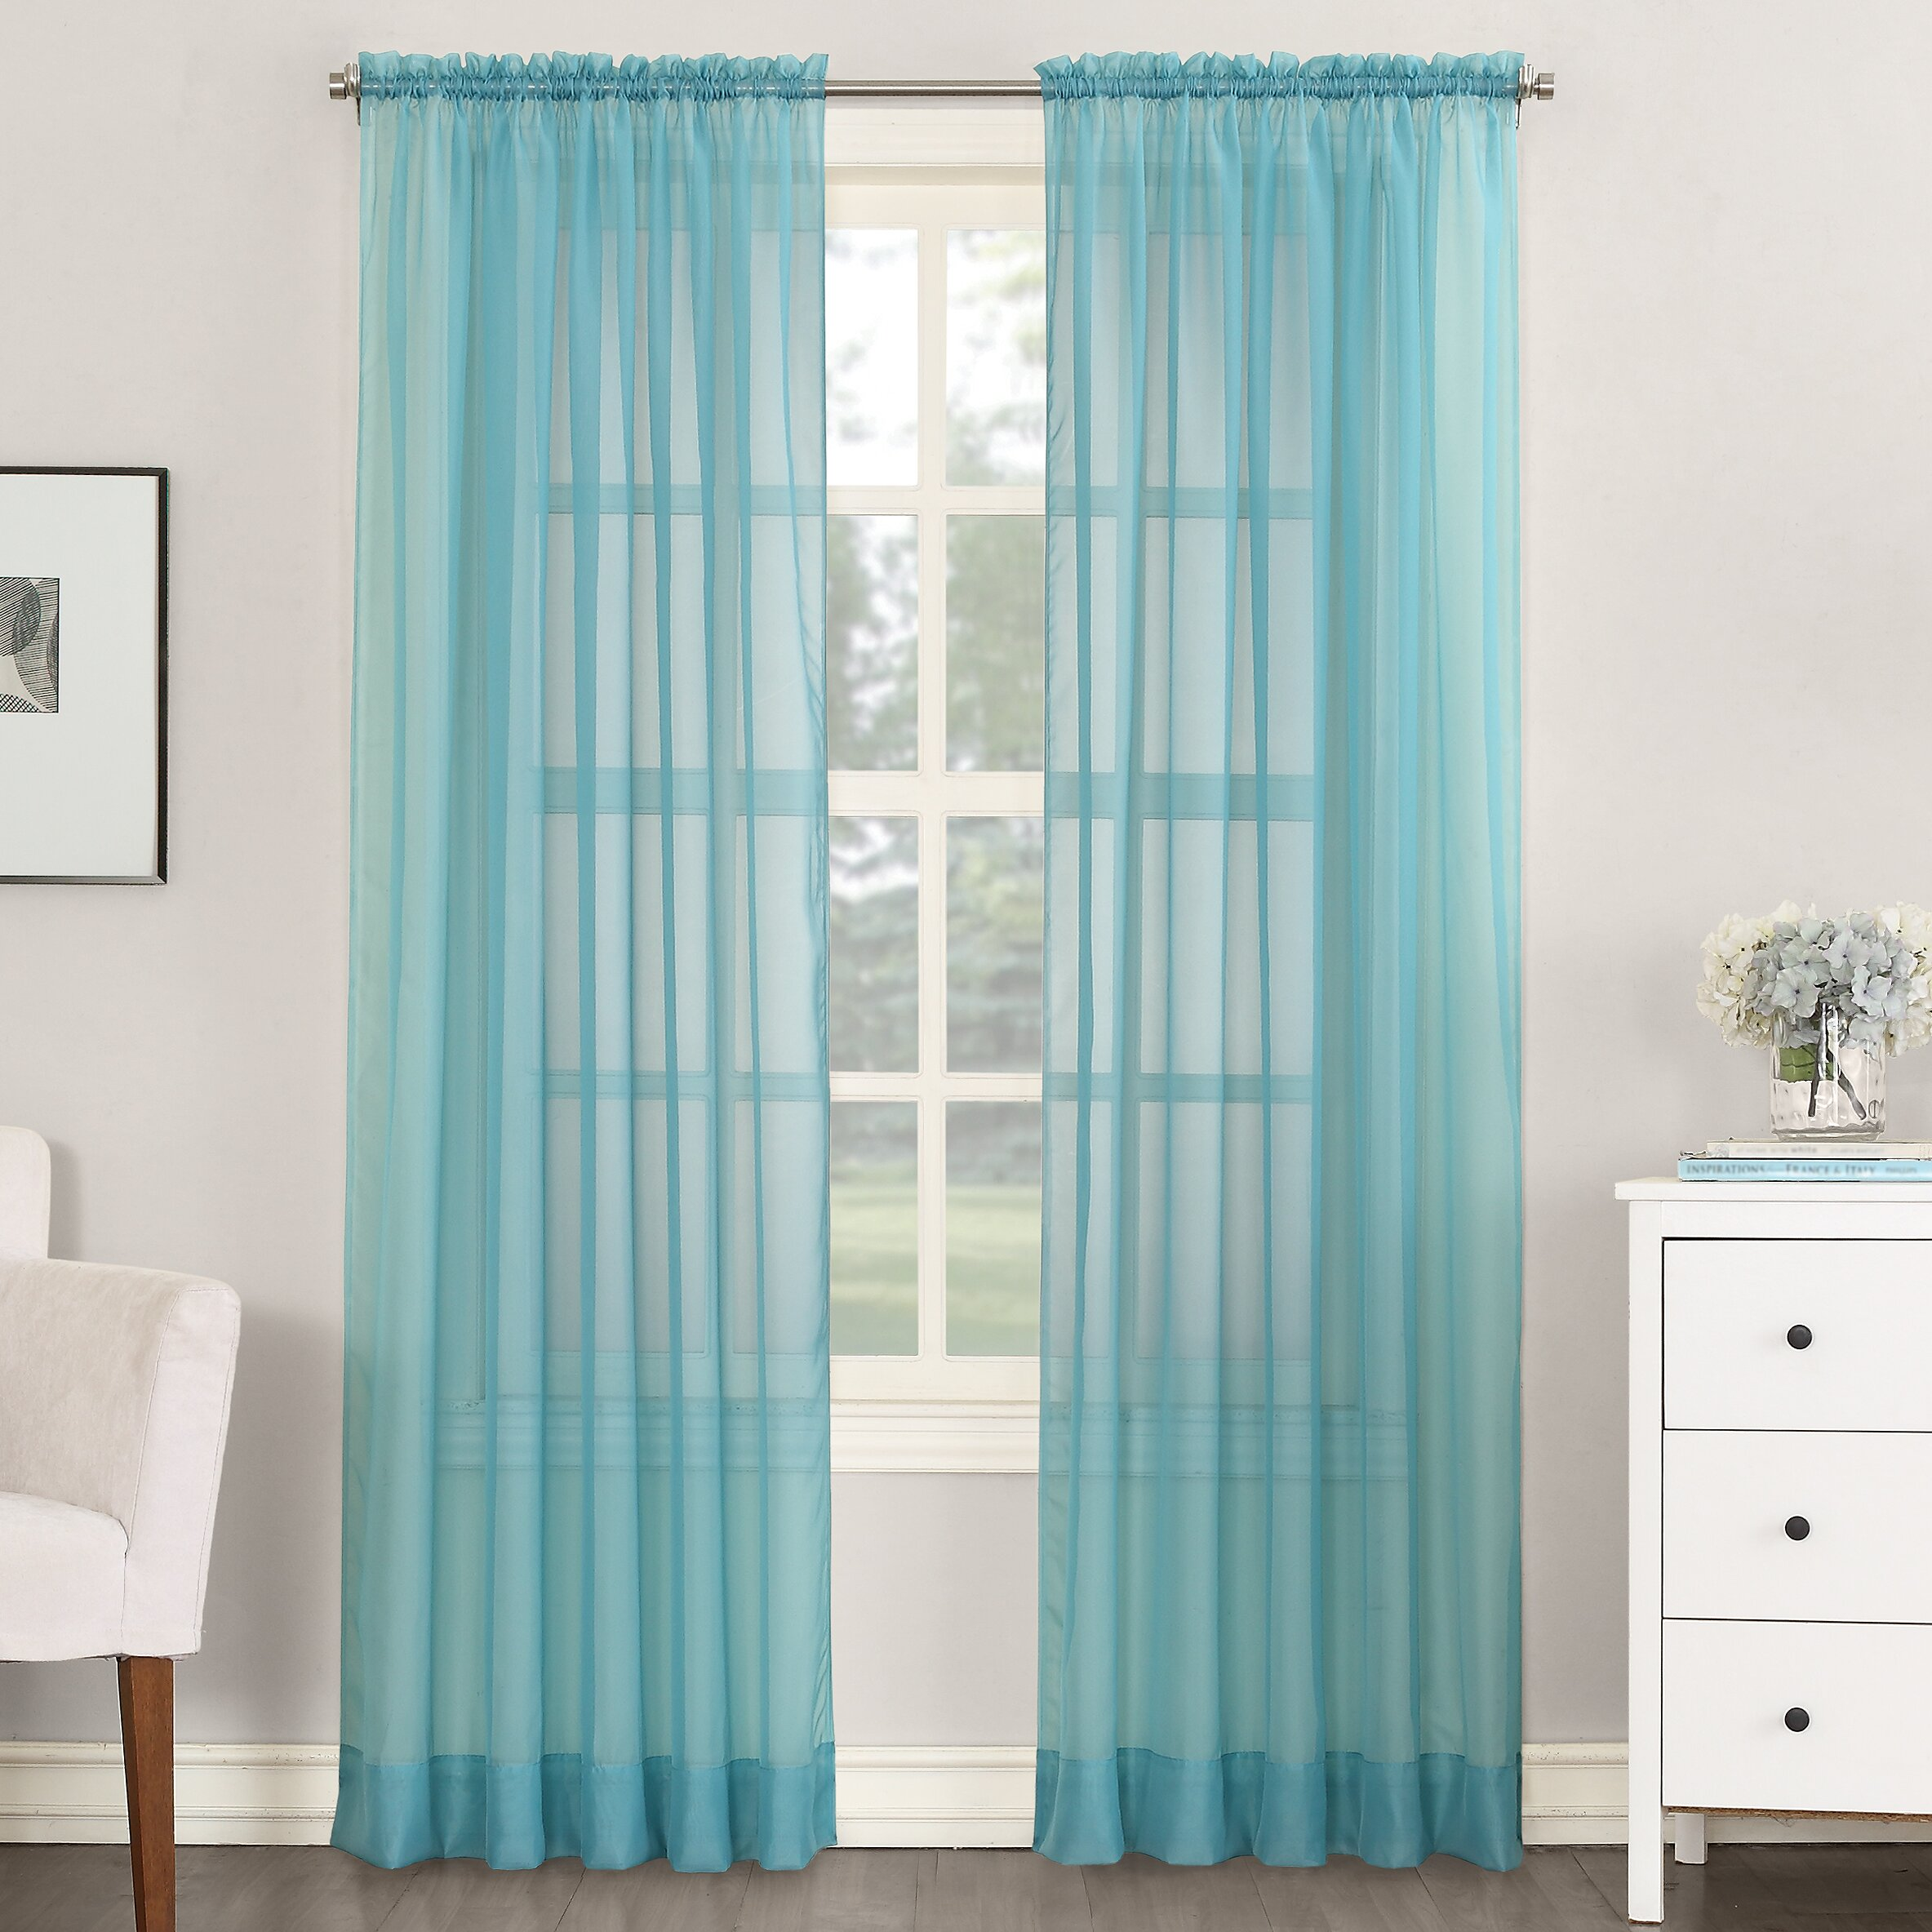 No 918 sheer voile single curtain panel reviews wayfair for Where to buy drapes